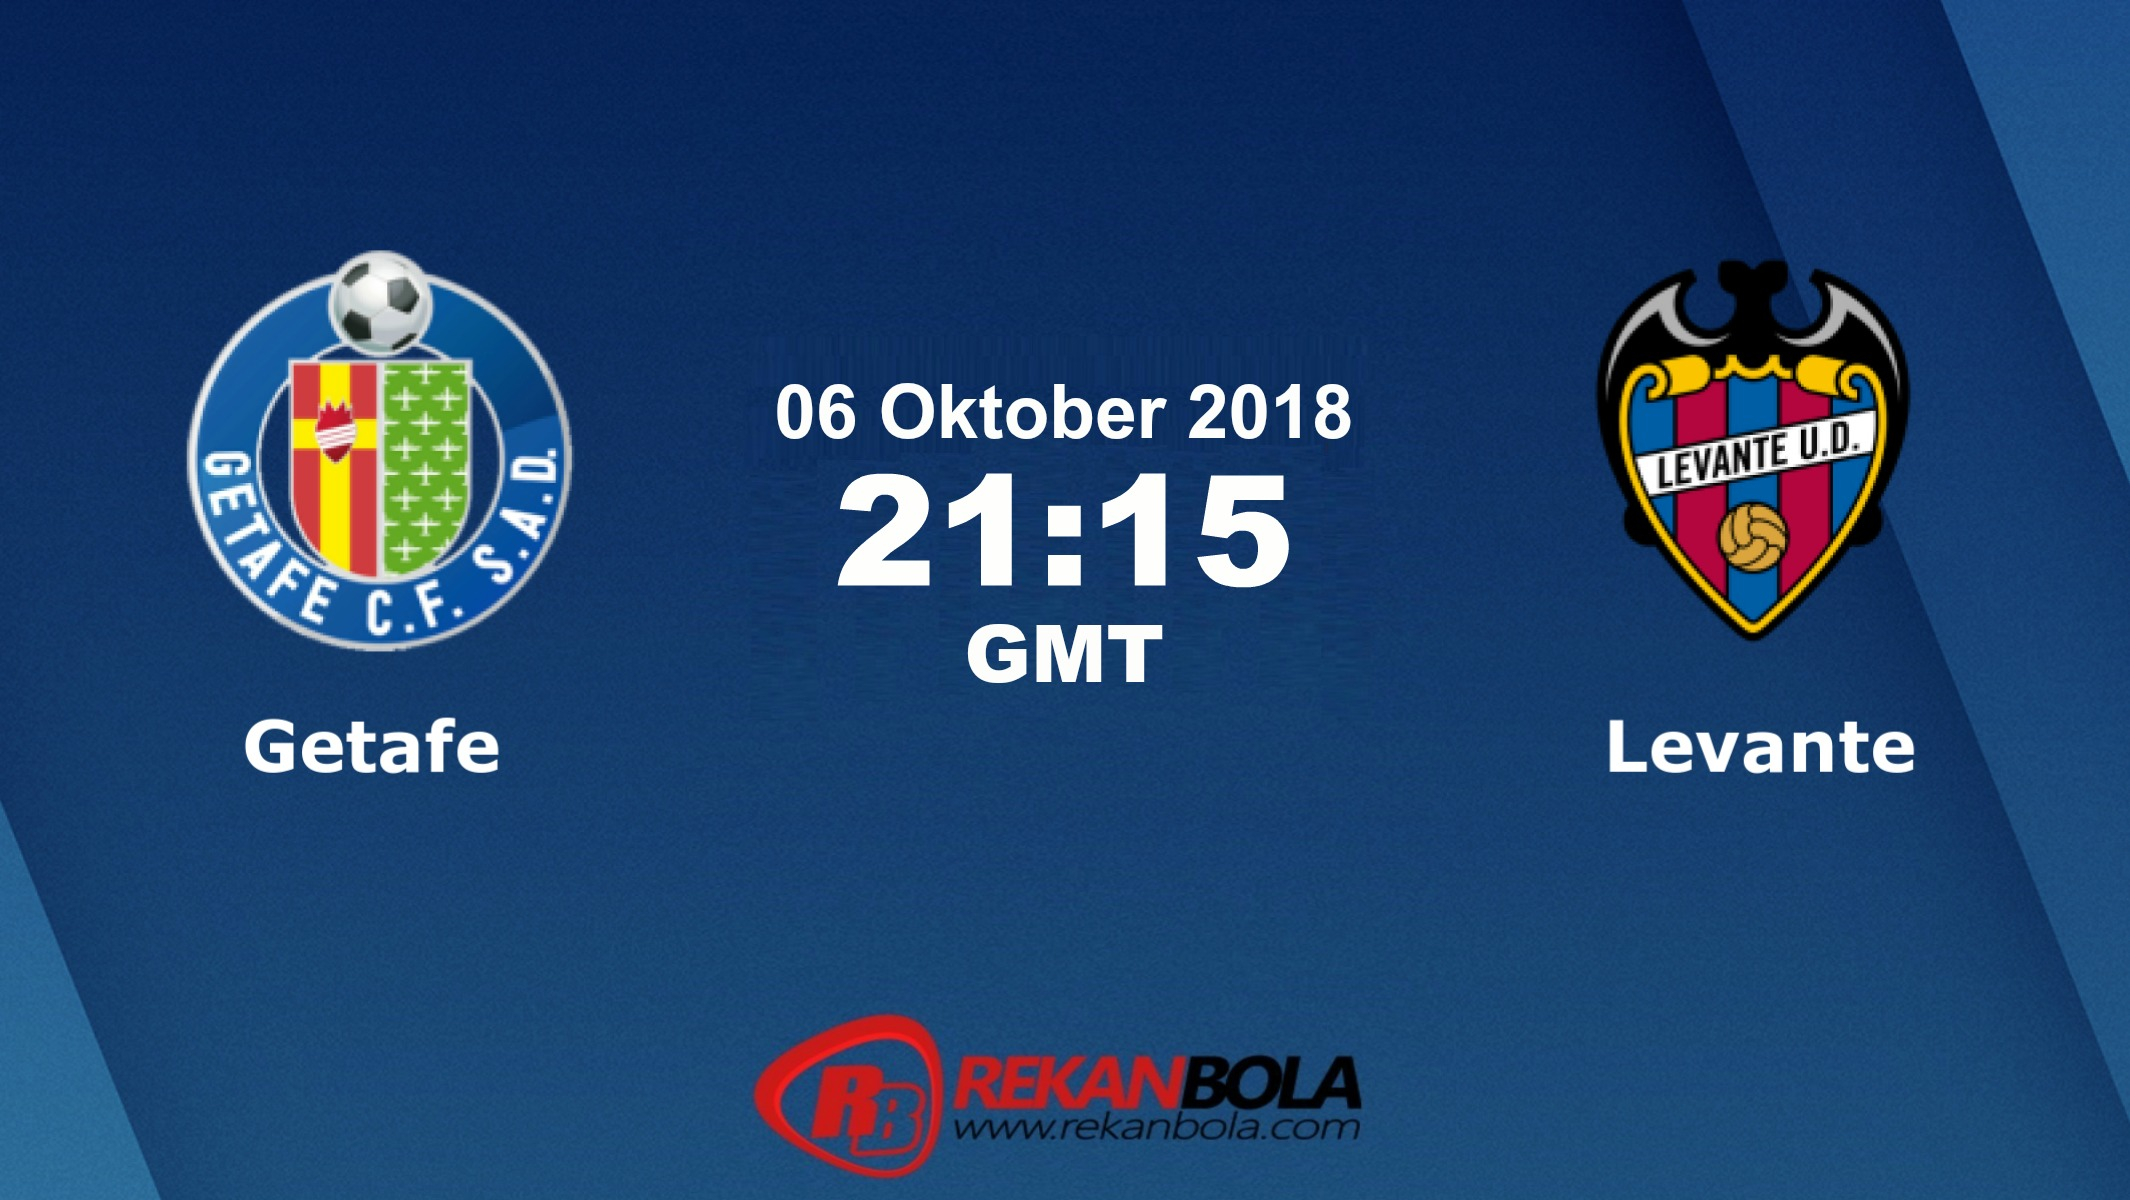 Nonton Siaran Live Streaming Getafe Vs Levante 06 Oktober 2018